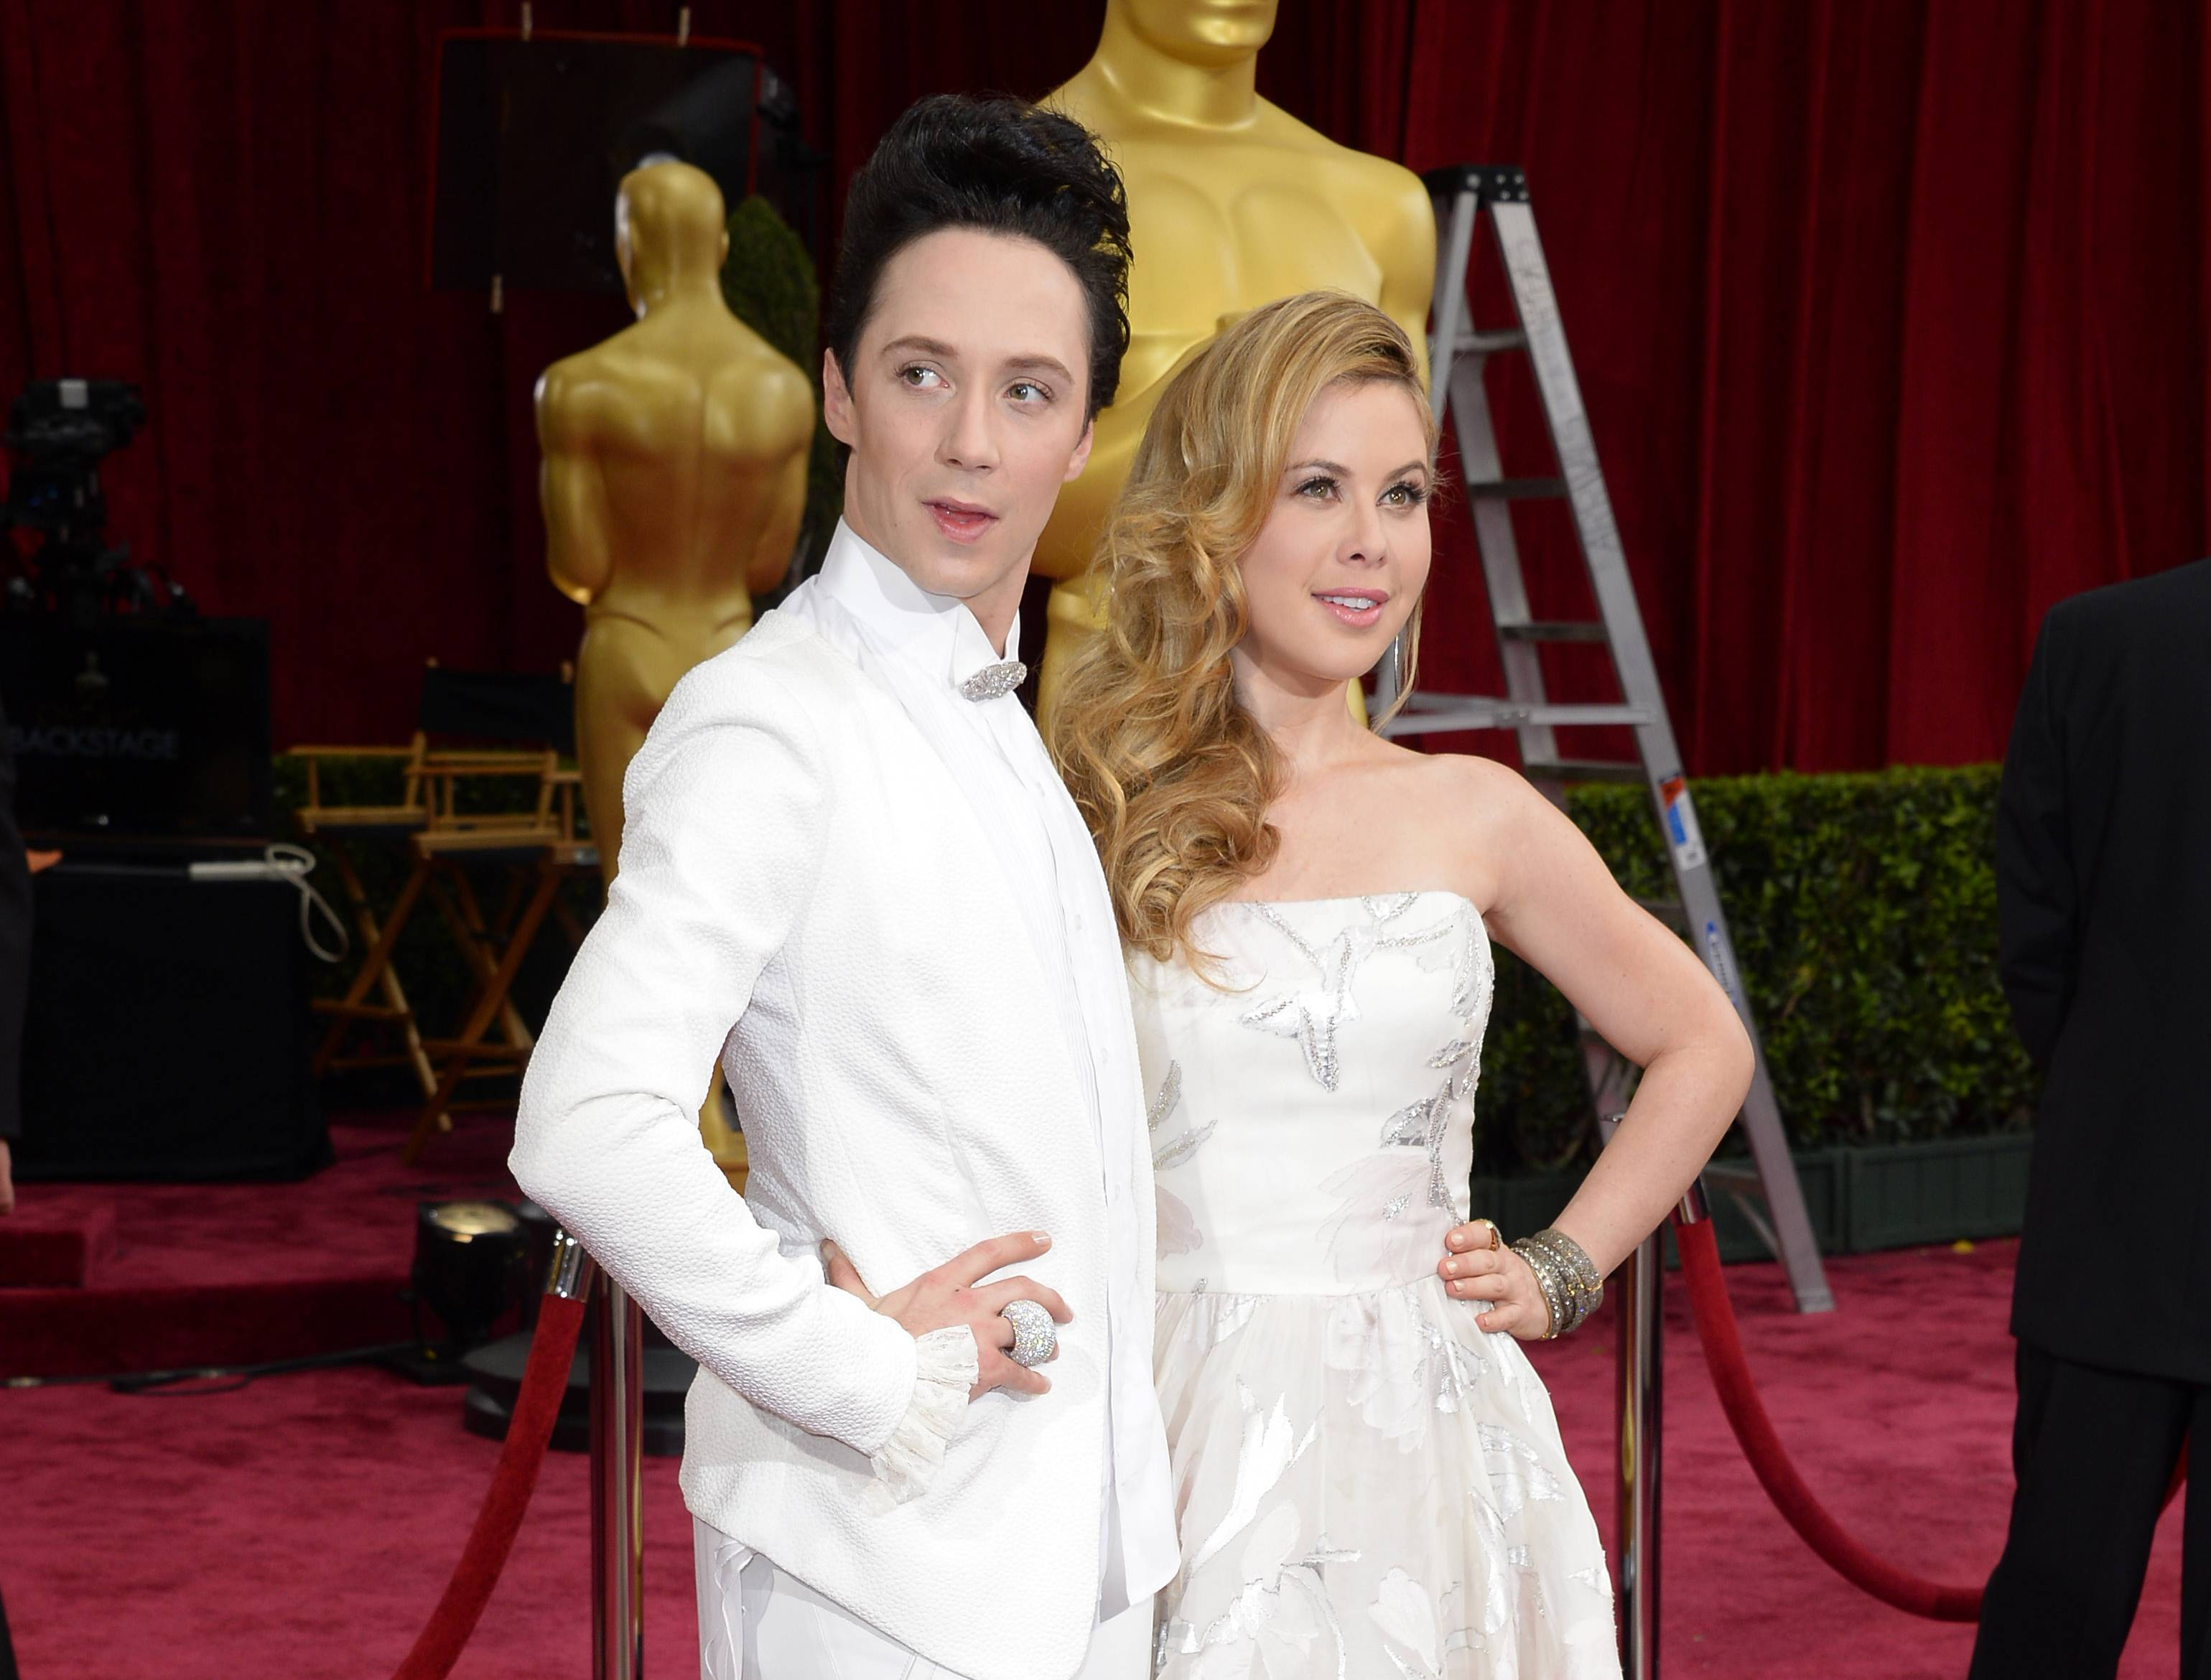 NBC is adding Johnny Weir and Tara Lipinski as fashion correspondents on its Kentucky Derby coverage next week, further evidence of how the network's coverage is reflecting one of the most female-friendly televised sporting events of the year.